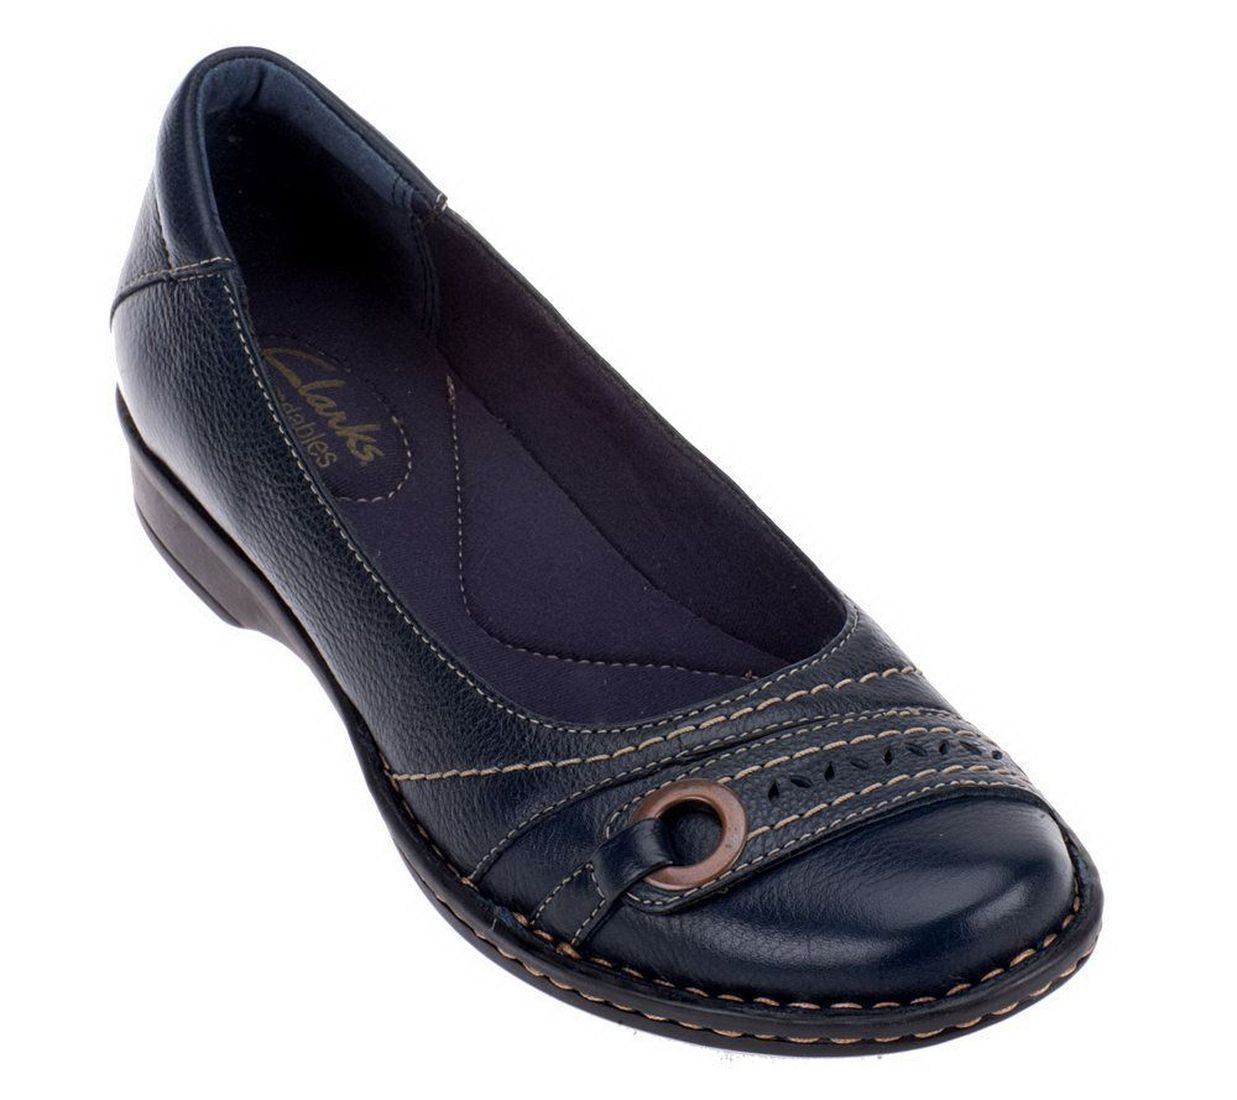 Clarks Bendables Recent Dutches Slip On Shoes Stitching